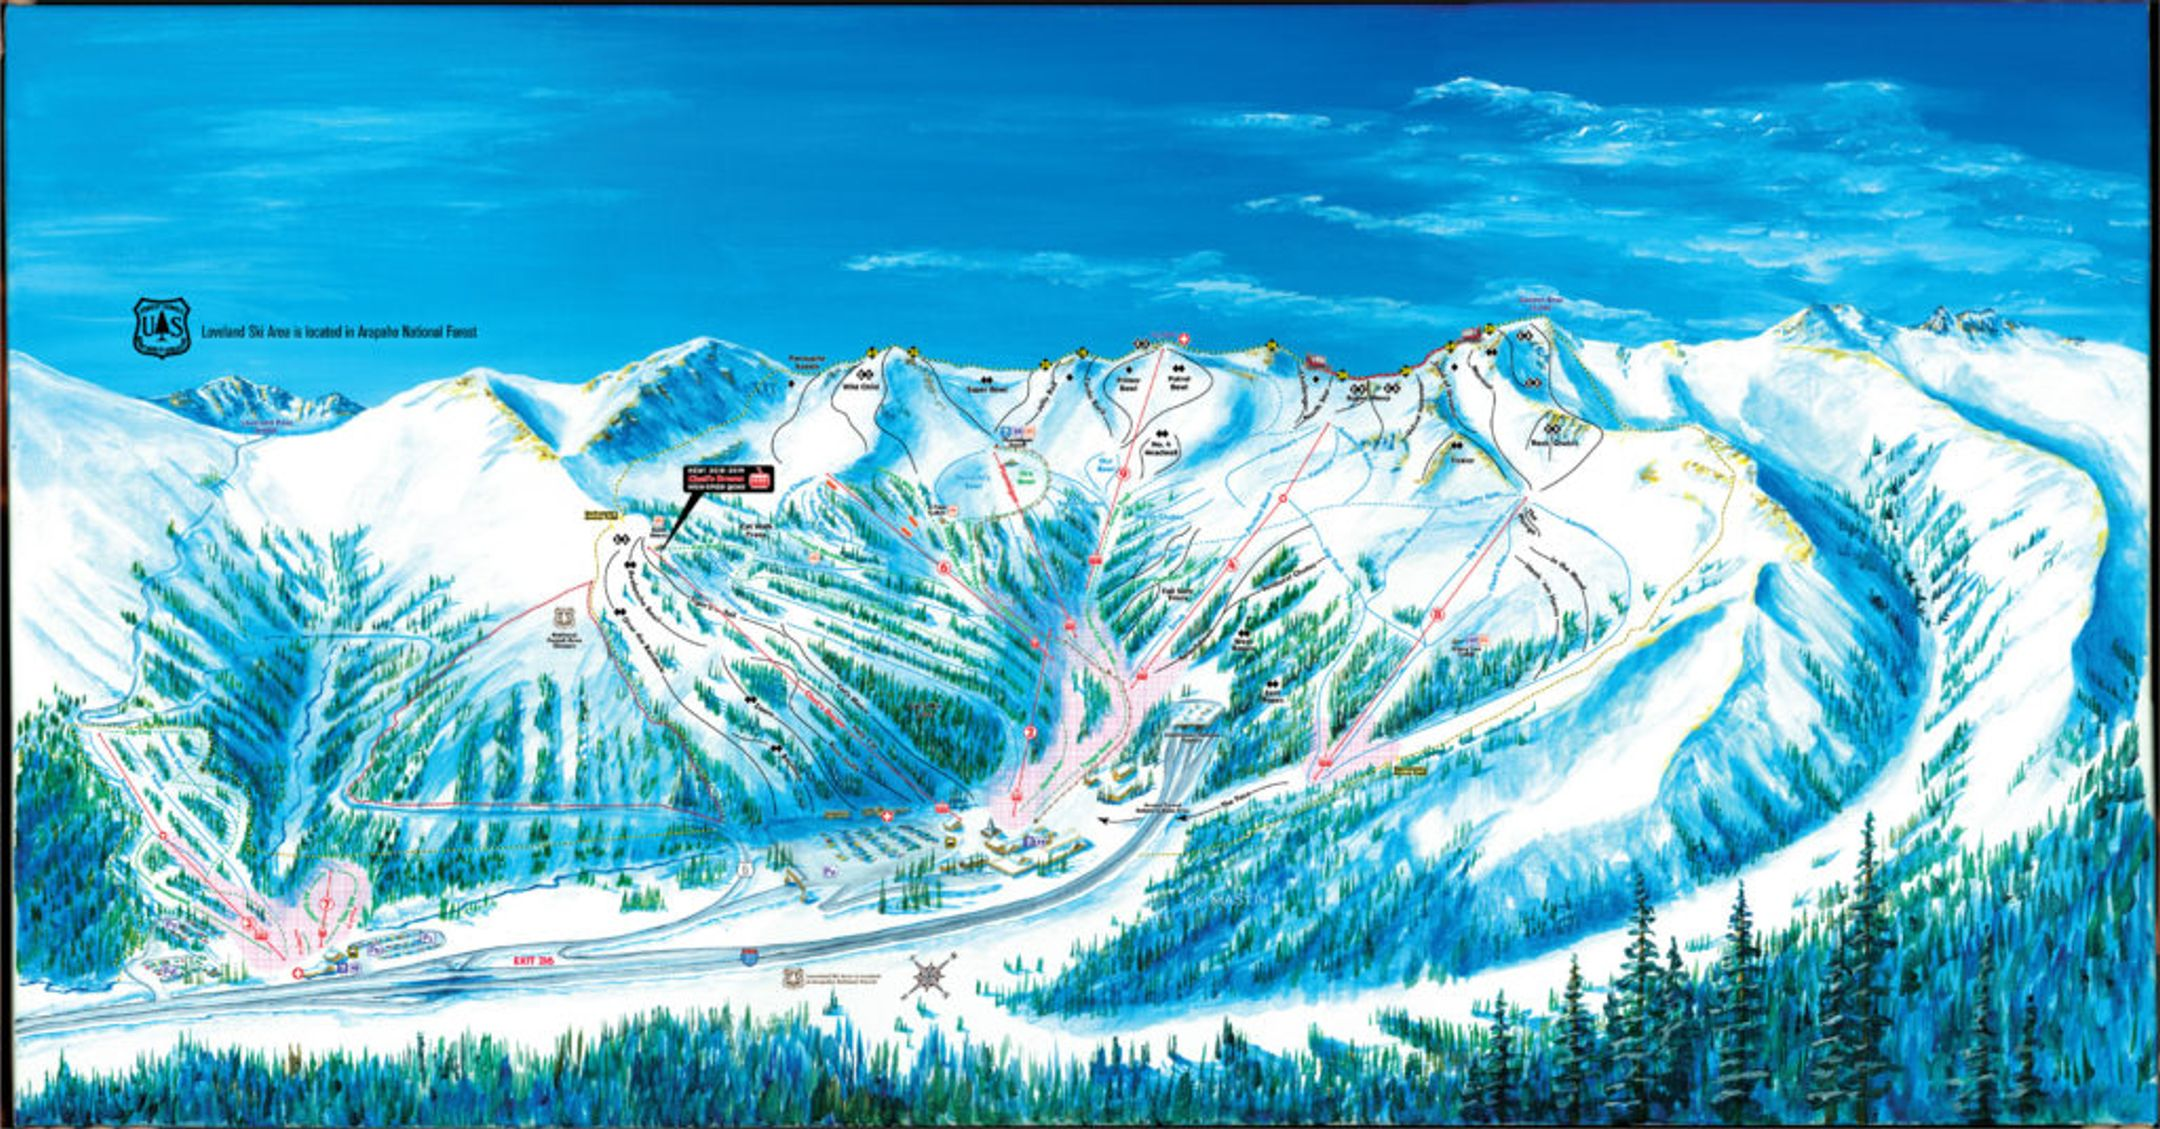 Loveland ski-resort-trail-map United States ripatrip